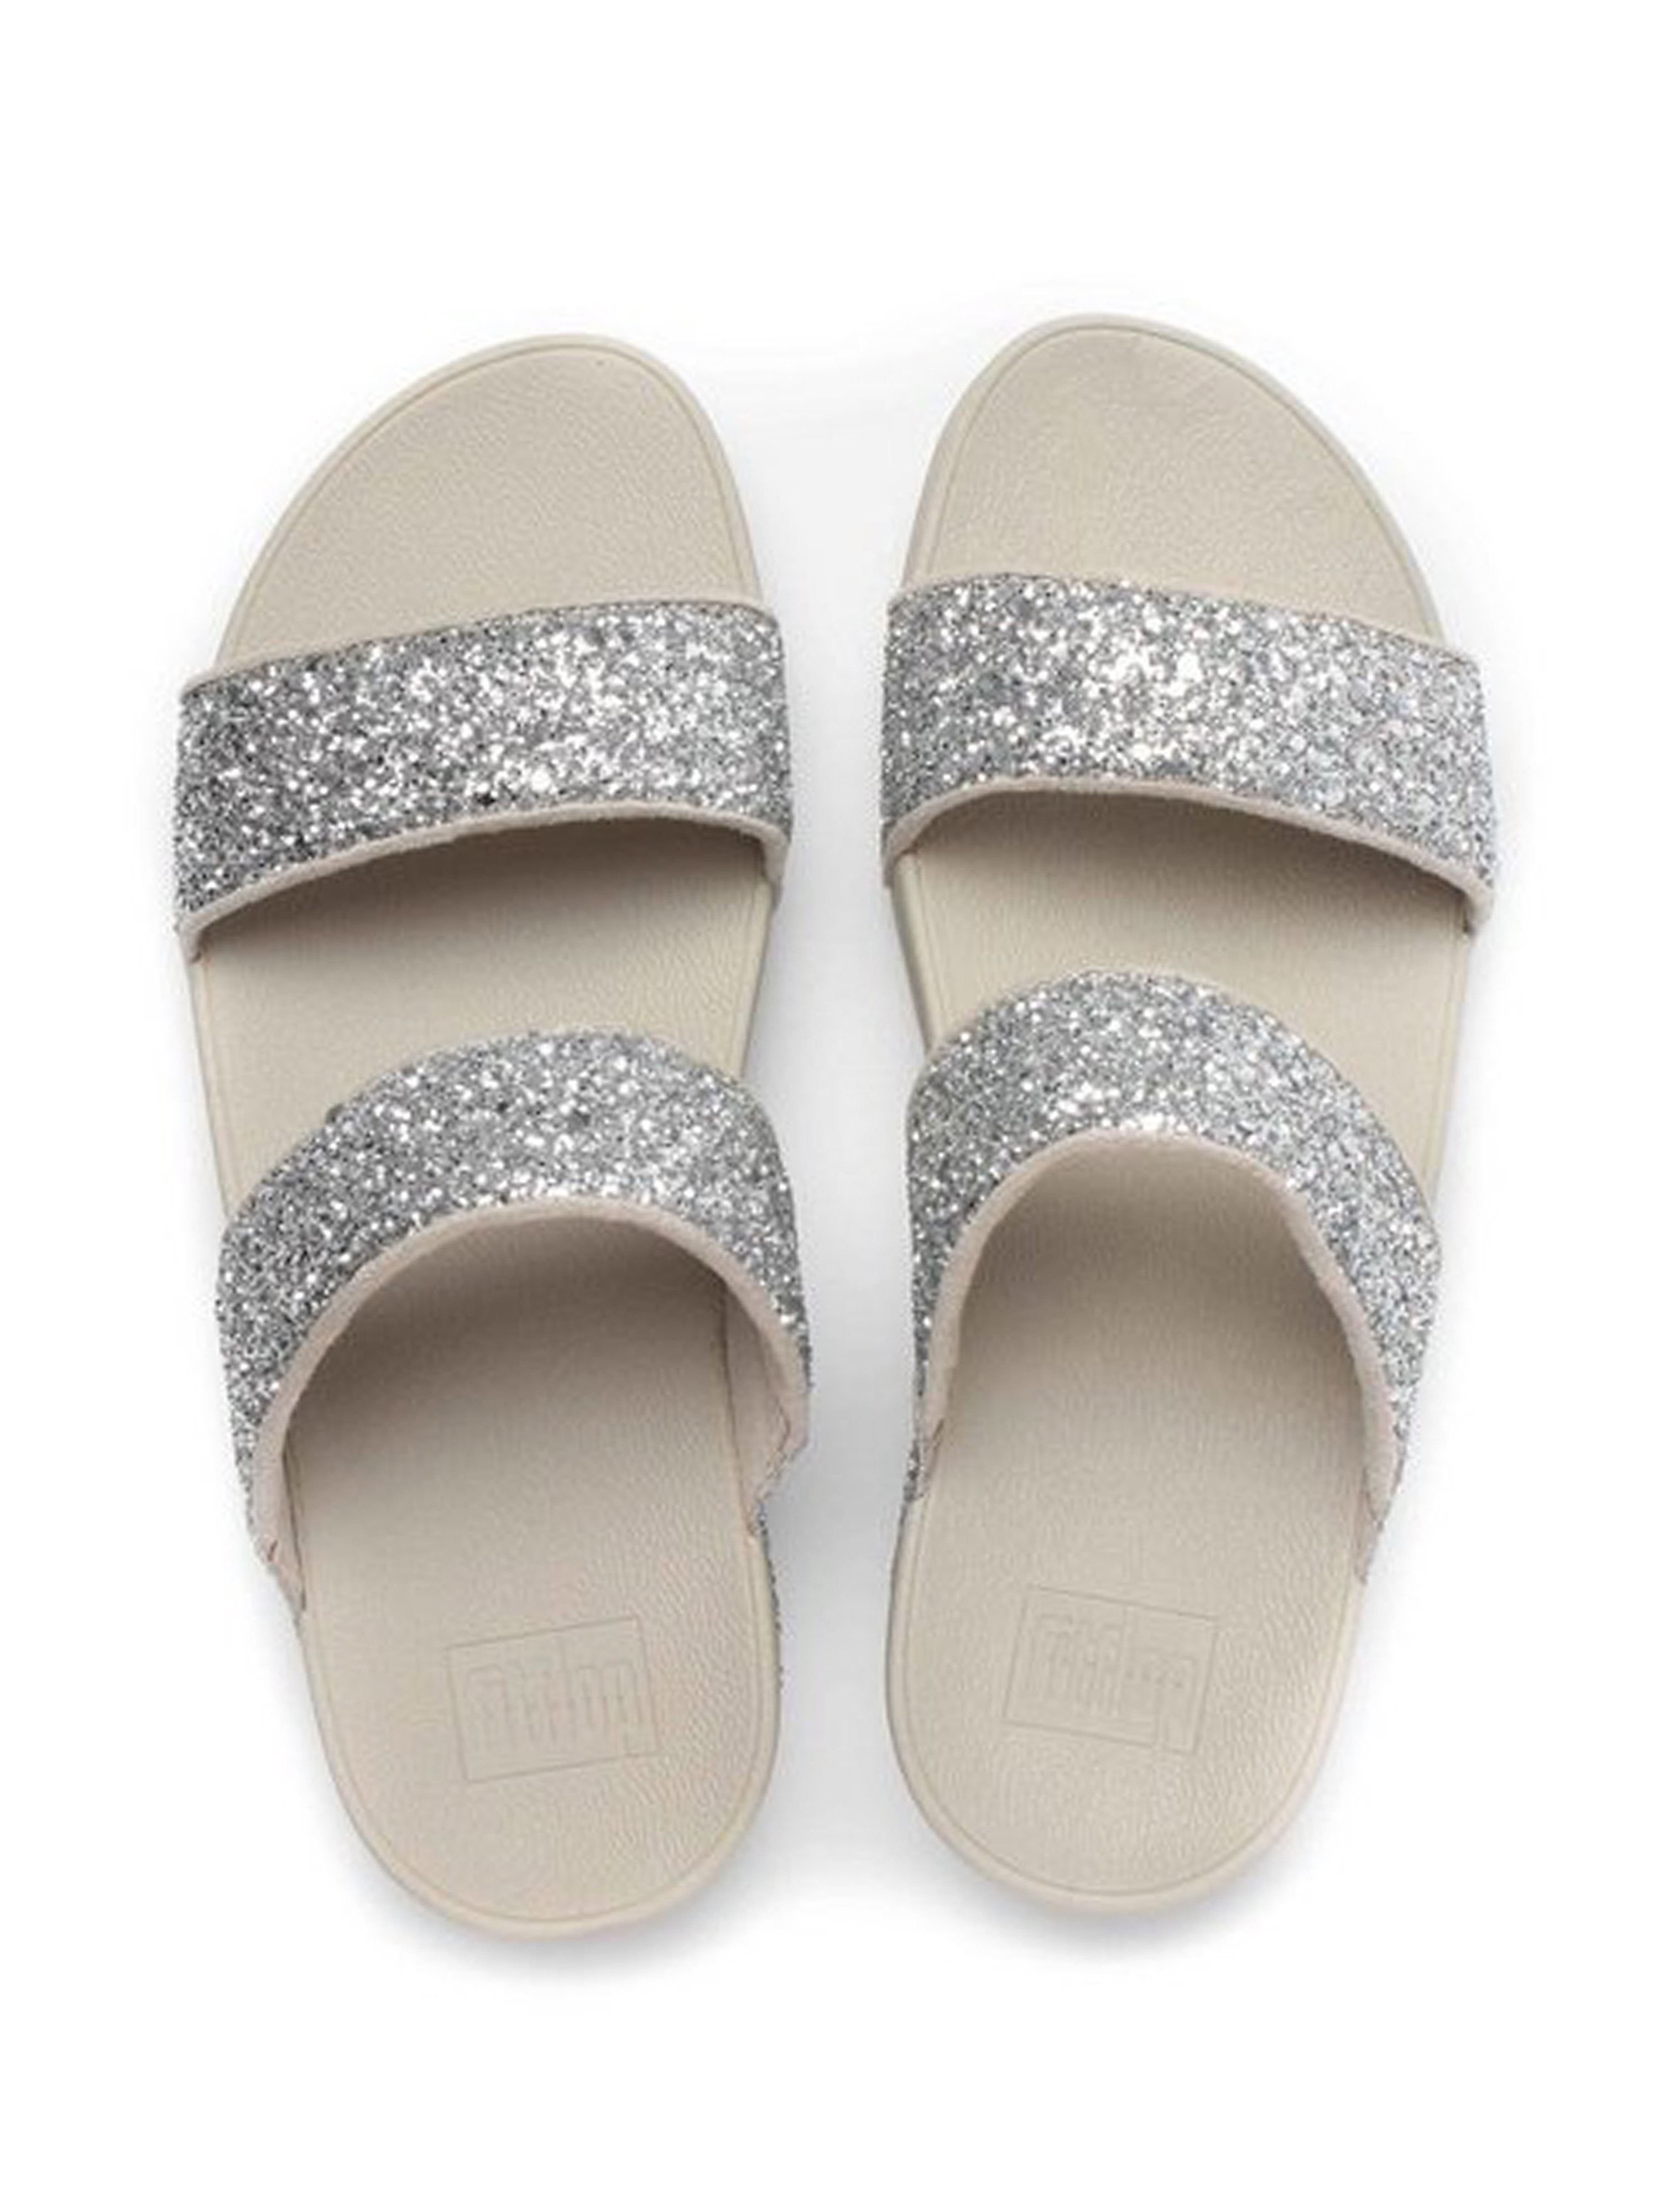 FitFlop Women's Glitterball Slide Sandals - Silver